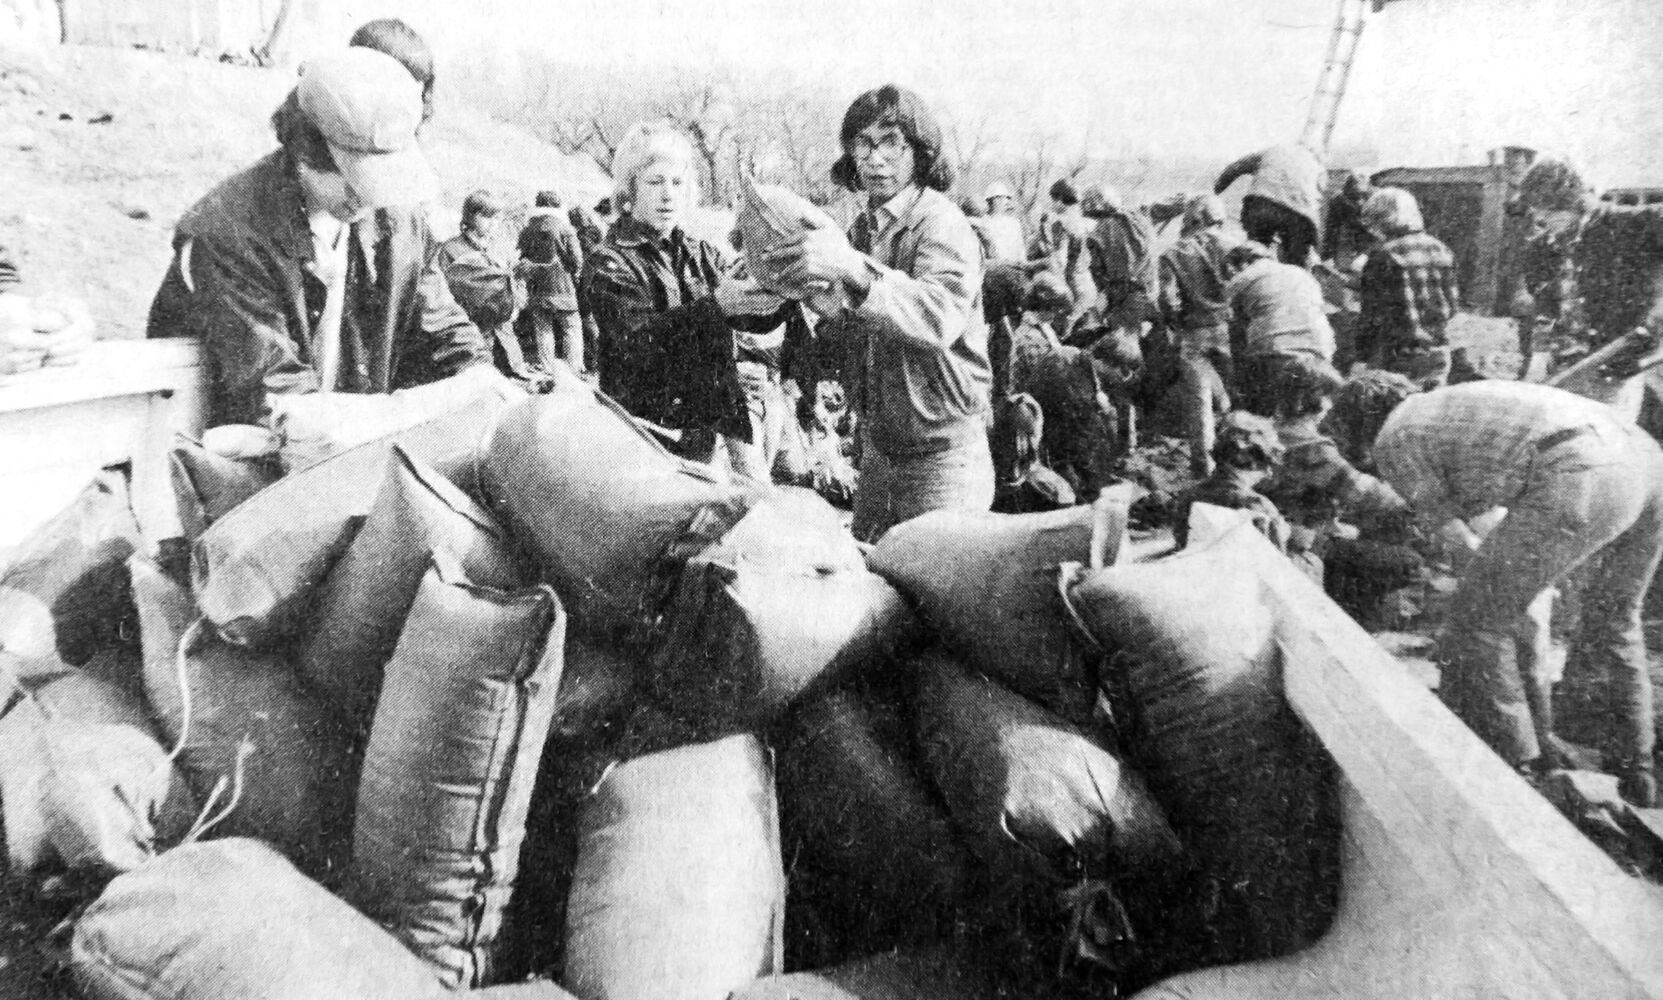 Souris residents struggle to contain the rapidly-rising waters of the Souris River. About 200 people worked around the clock, reinforcing dikes with sandbags in an effort to hold back the flood.  (TruBrandon Sun archives, April 9, 1976)